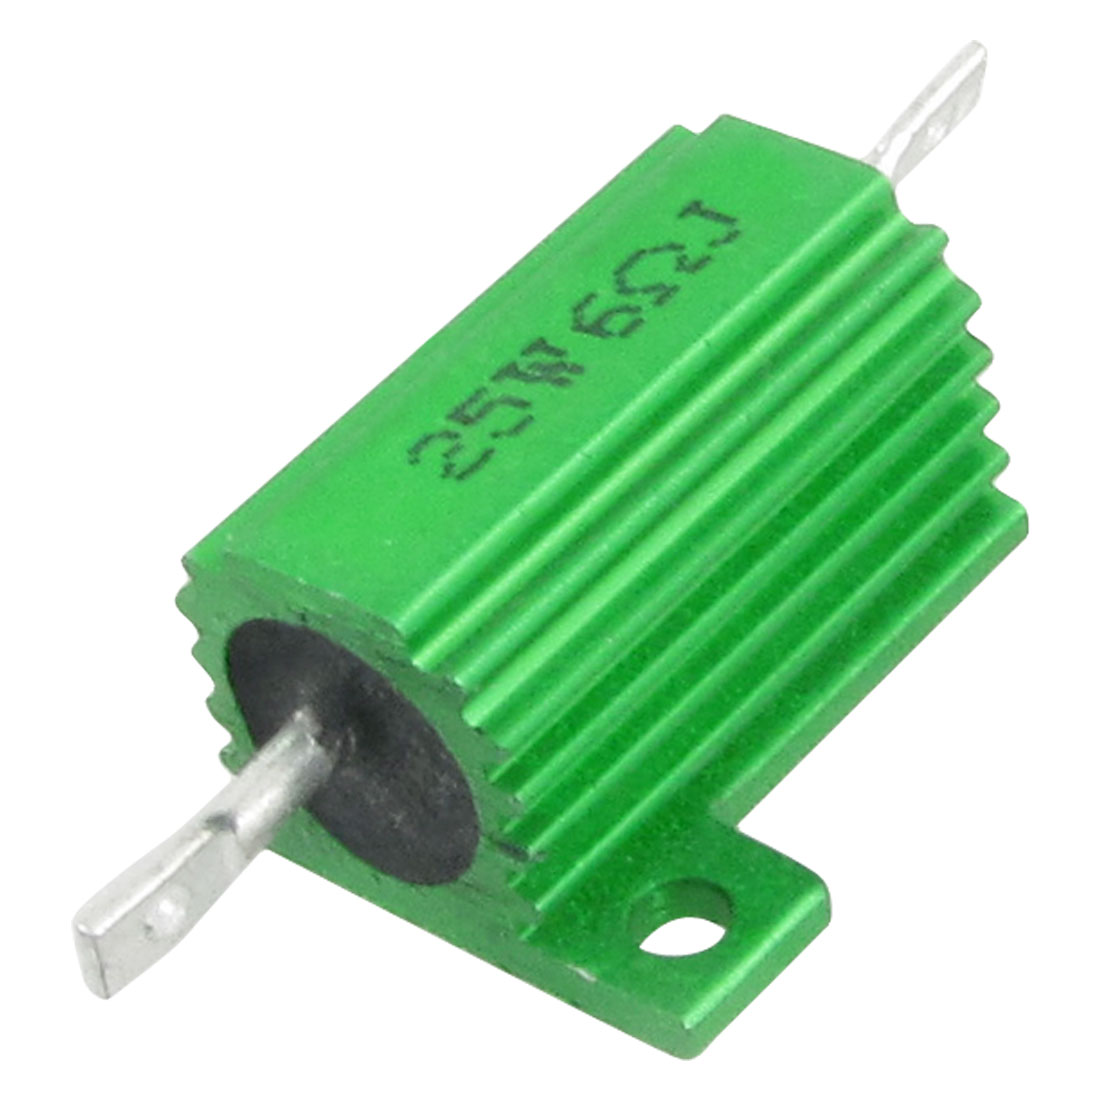 Green 25W Watt 6 Ohm 5% Aluminum Housed Wire Wound Resistor